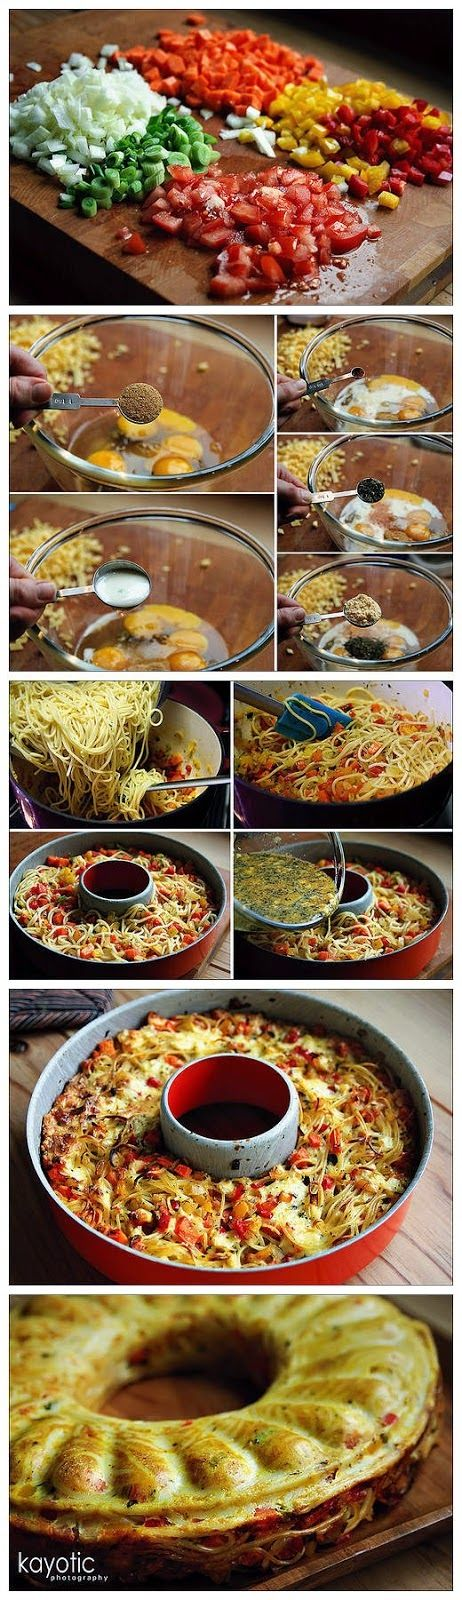 How To Make Spaghetti Pie Ingredients: 10 oz spaghetti 7 oz cheese 2 bell peppers 1 large onion 1 large carrot 2 spring onions ...